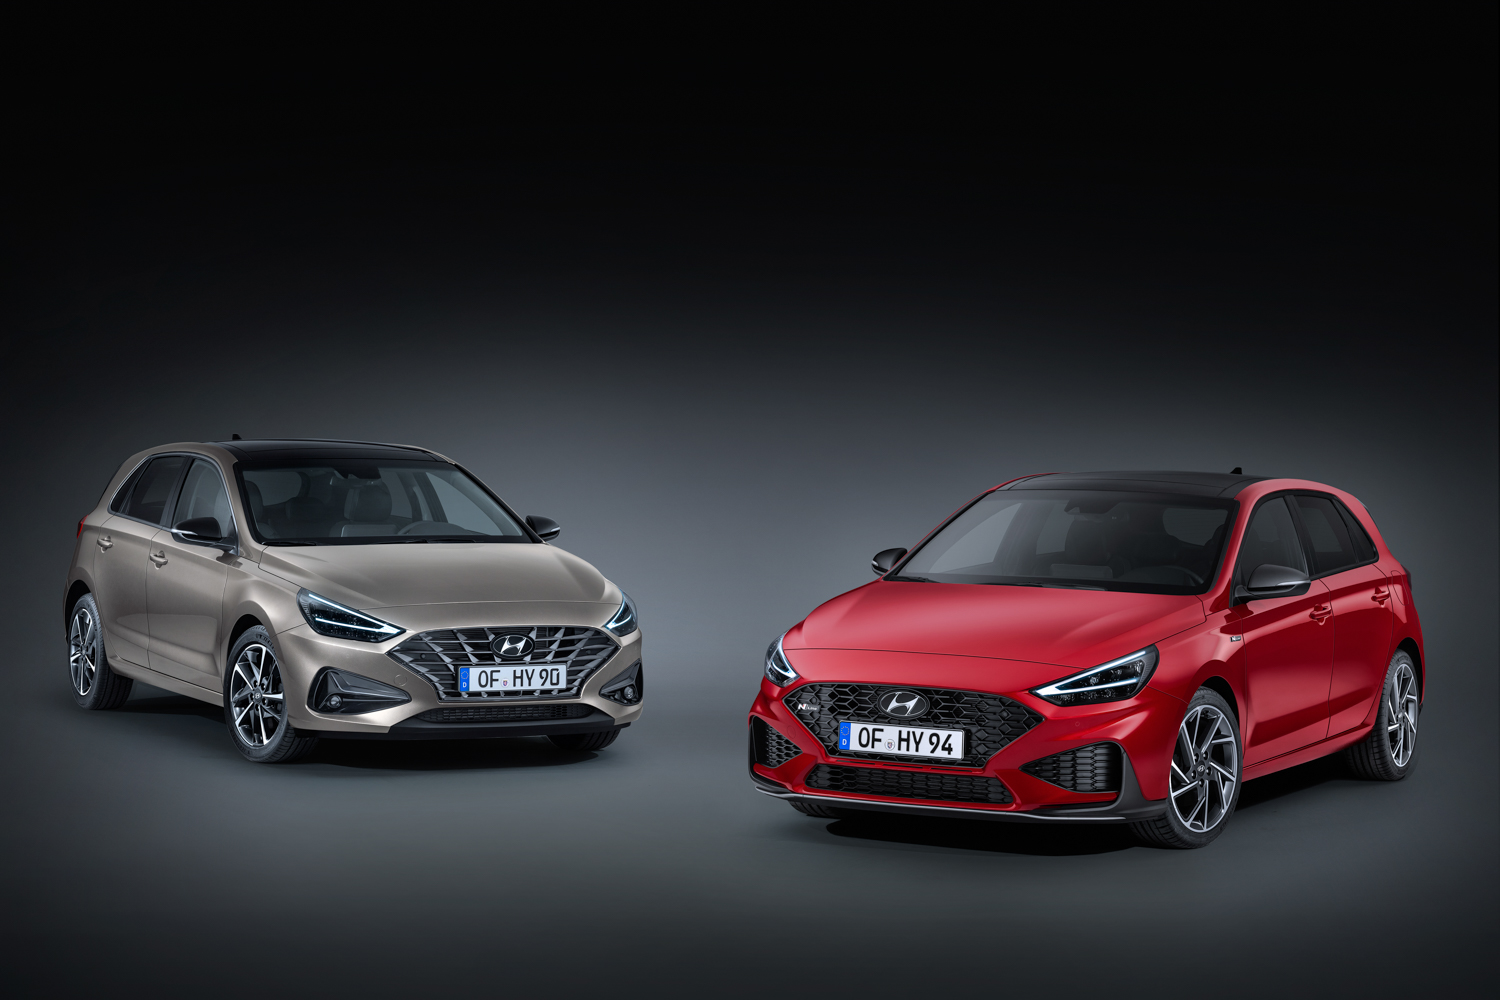 Car News | Hyundai shows new i30 ahead of Geneva debut | CompleteCar.ie